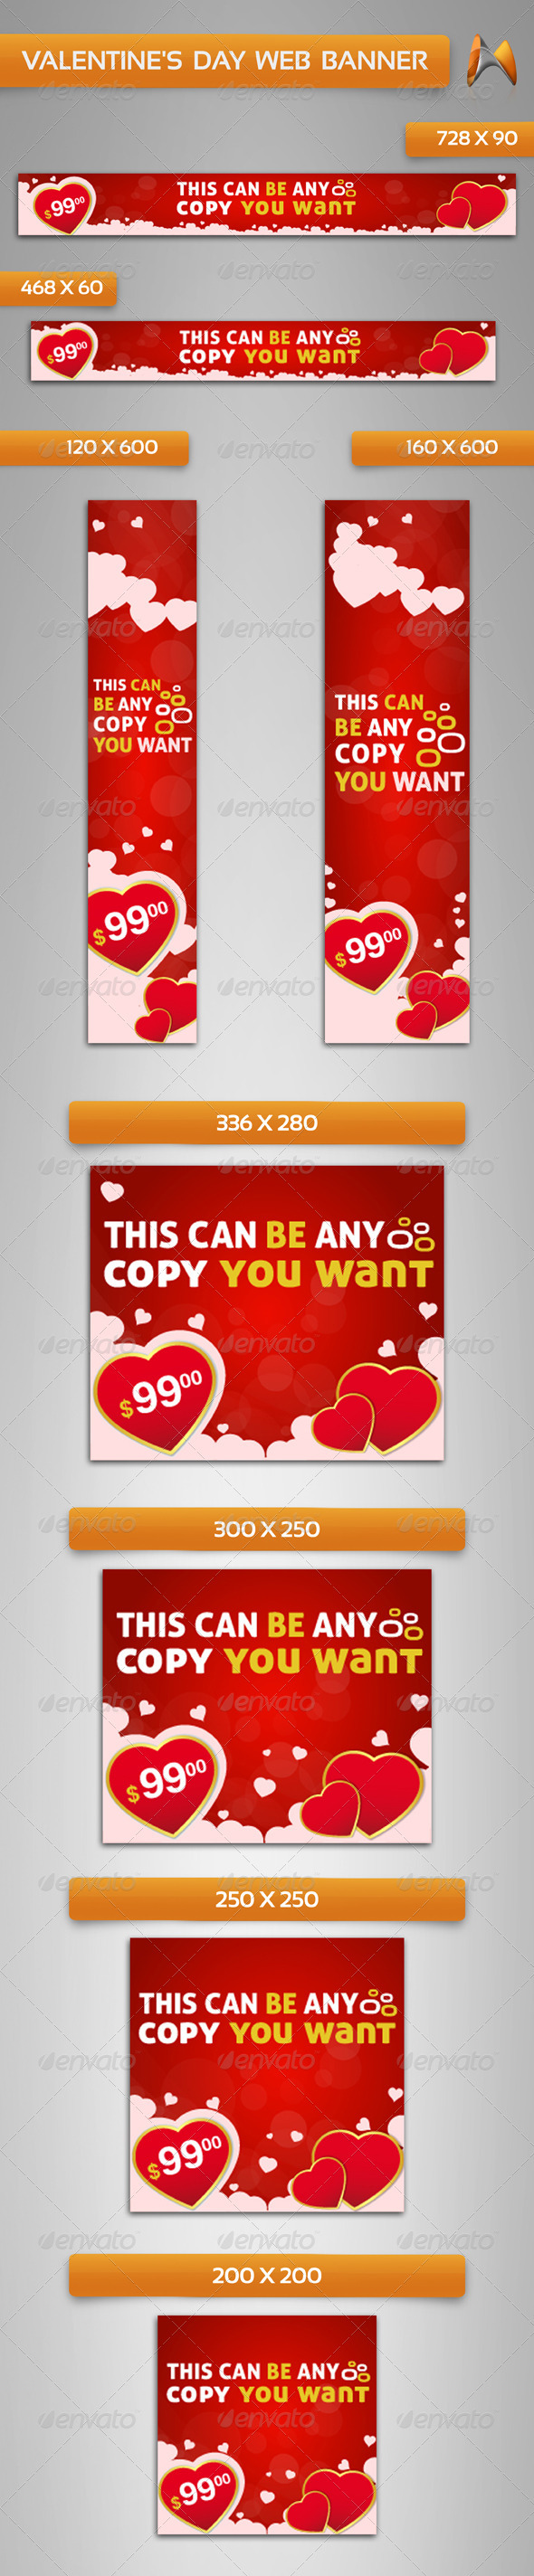 GraphicRiver Valentine s Day Web Banner 3778564